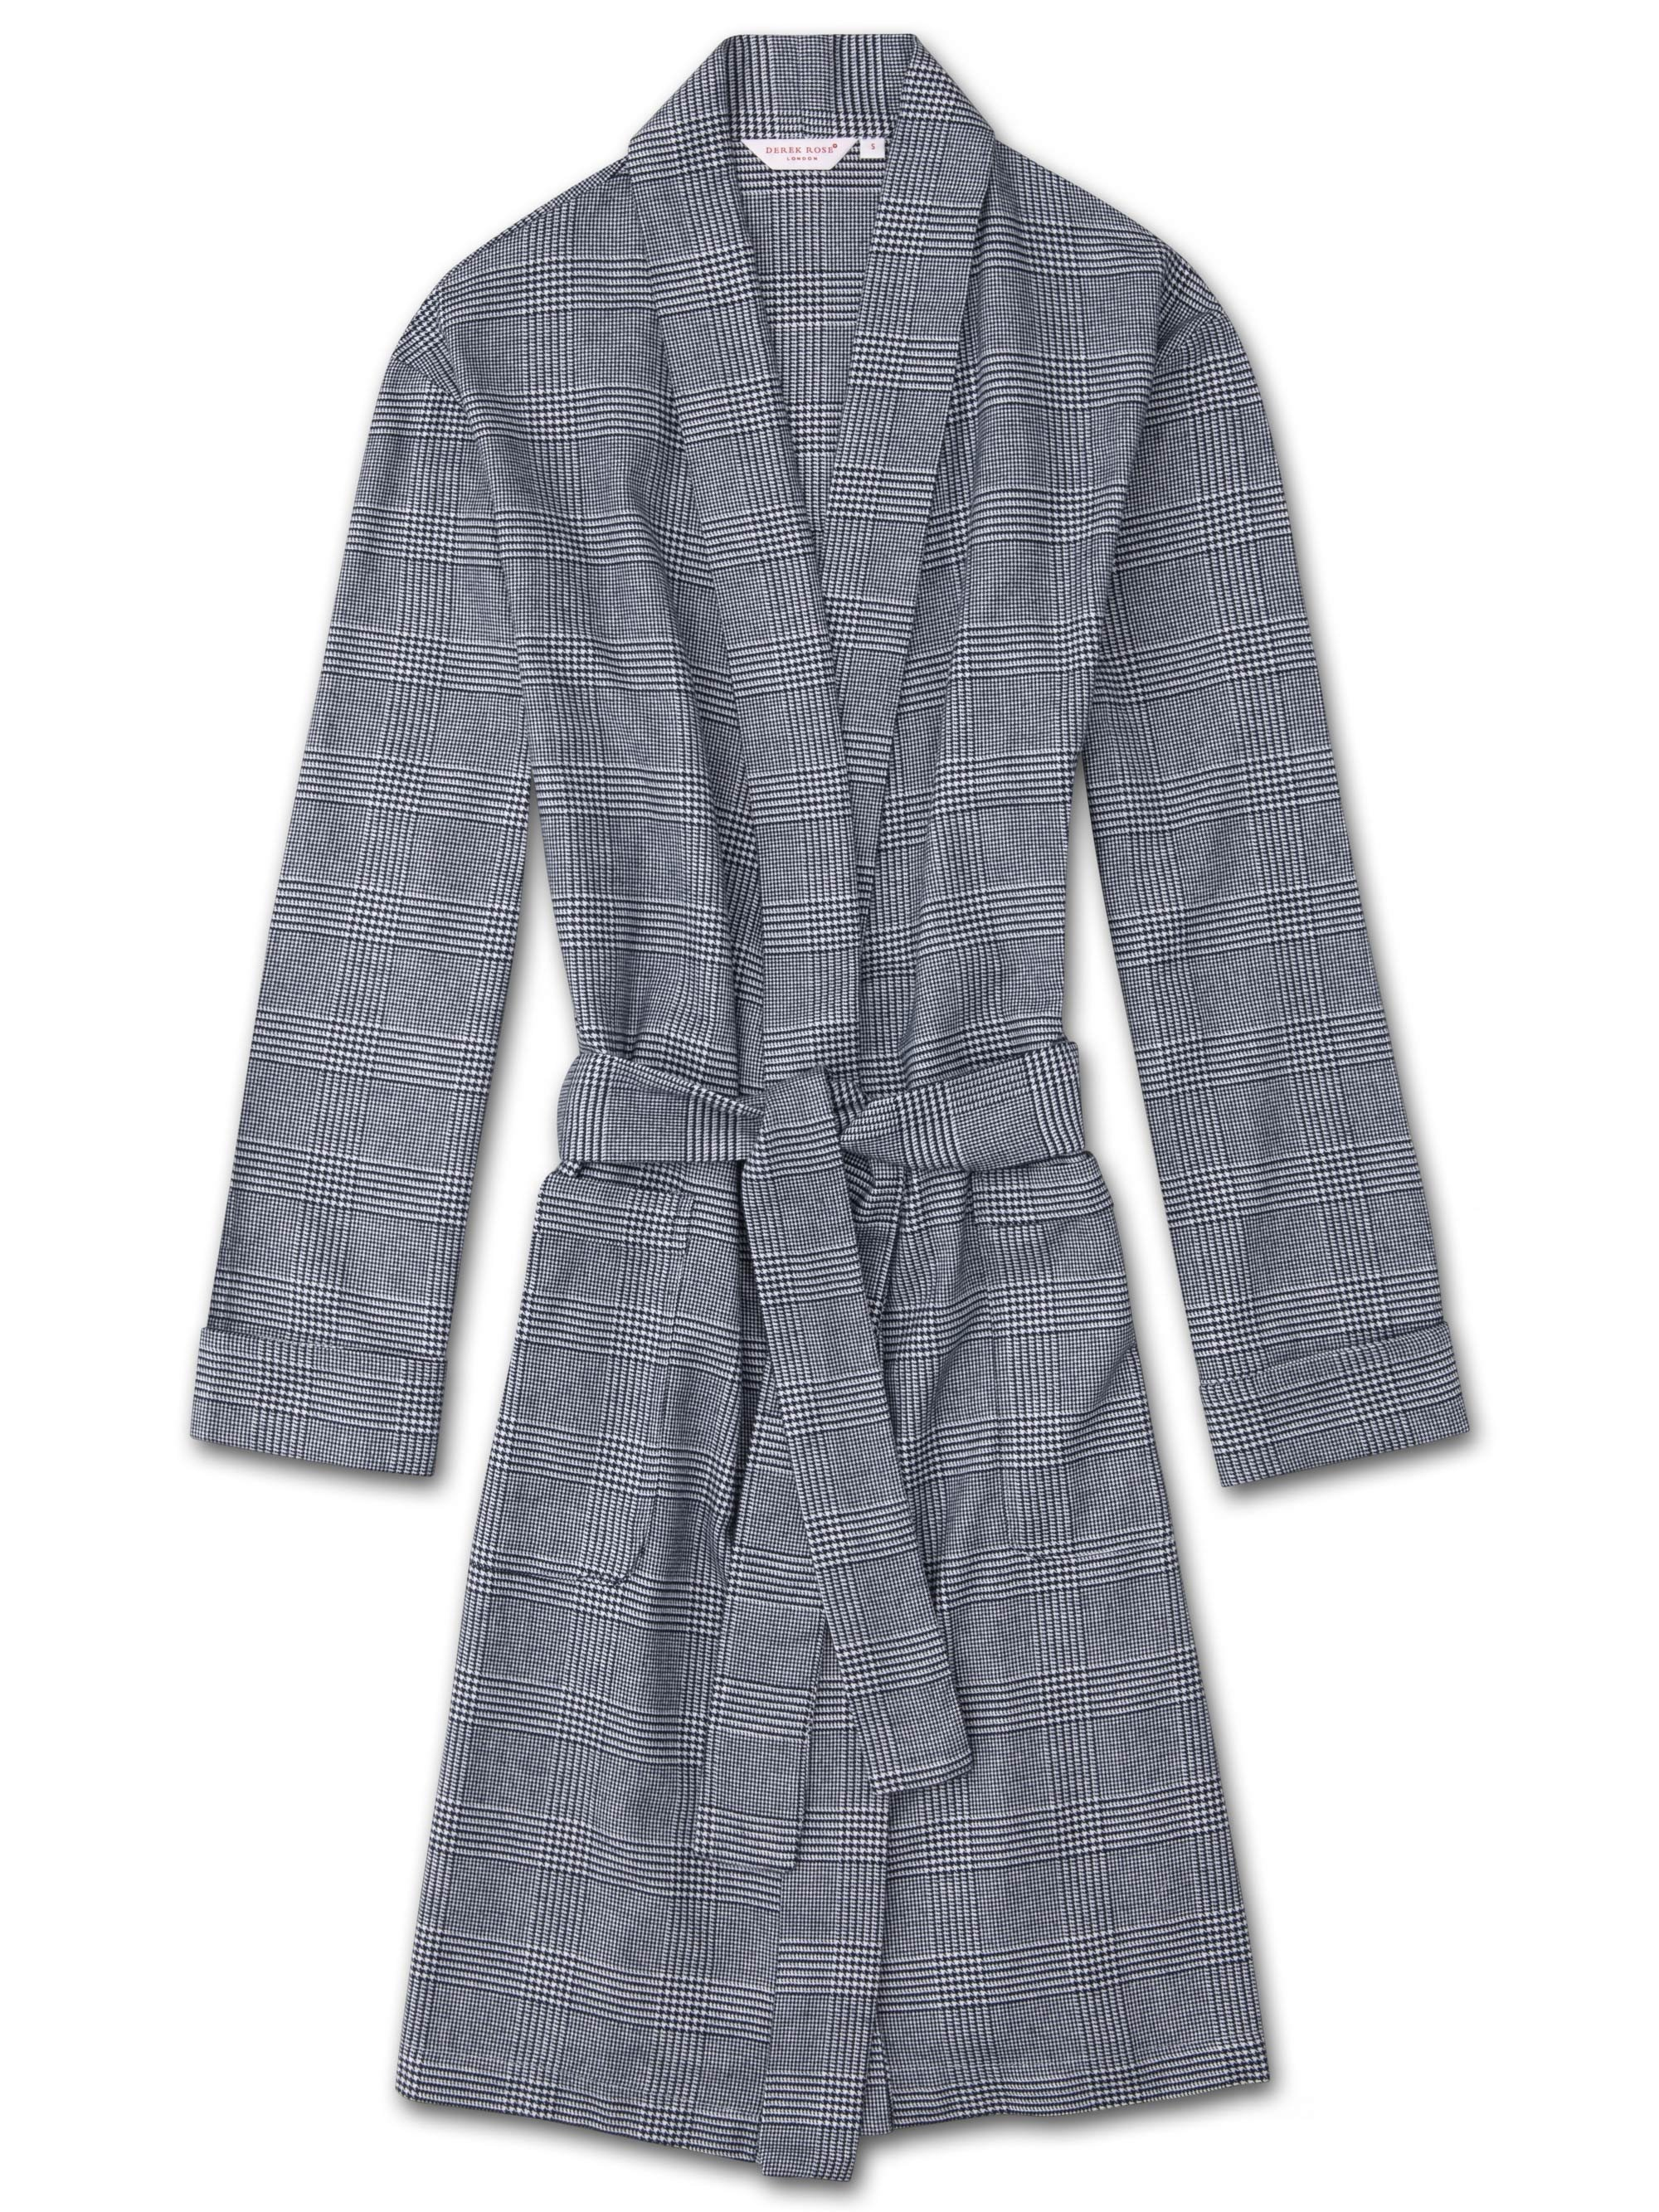 Women's Dressing Gown Kelburn 10 Brushed Cotton Check Navy